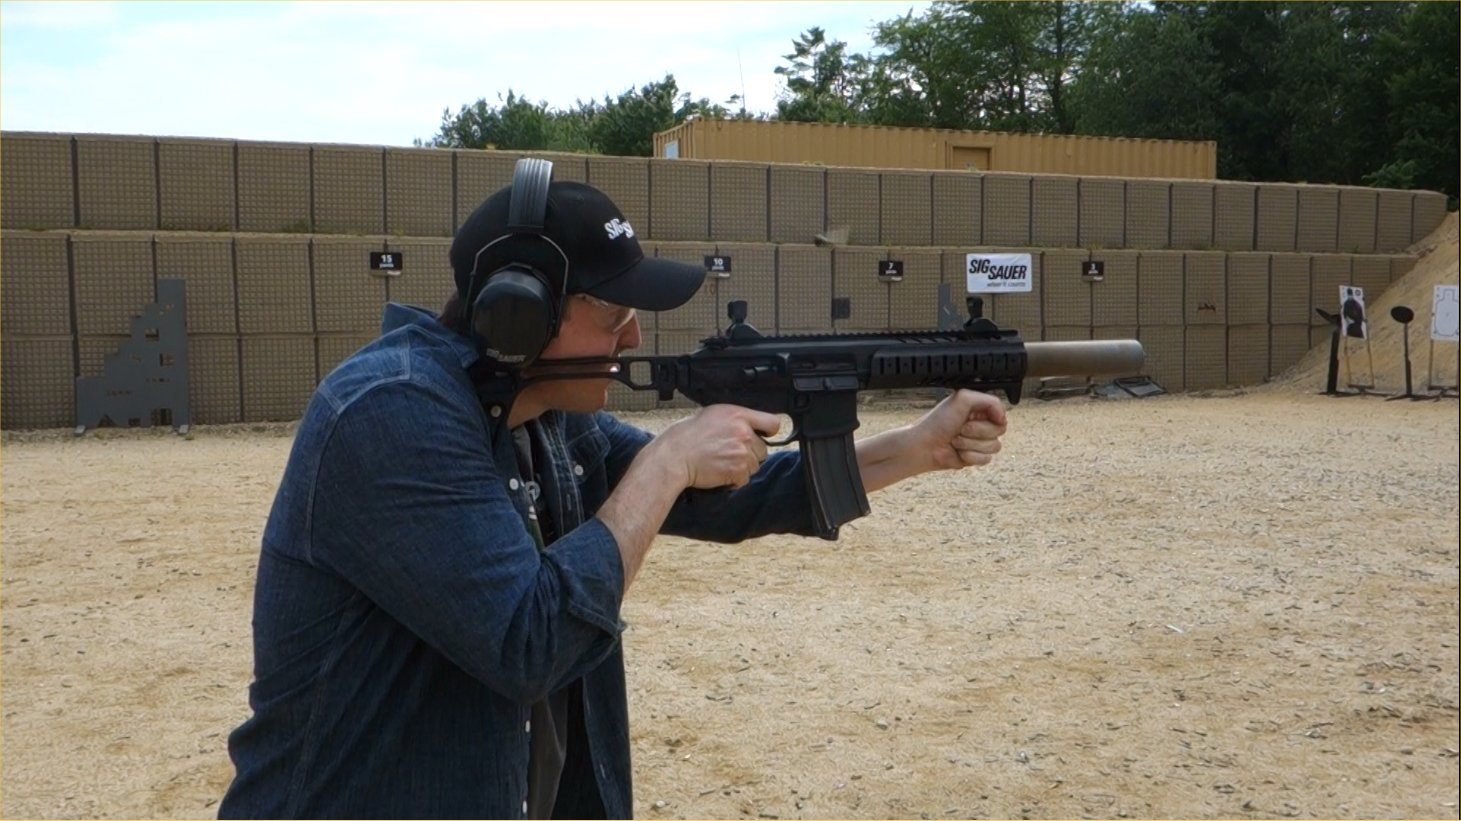 SIG SAUER SIG MCX Multi Caliber AR Assault Rifle Carbine SBR 300 Blackout 300BLK Suppressed David Crane Firing on Full Auto SIG SAUER New Media Writers Event DefenseReview.com DR 11 SIG MCX LVAW (Low Visibility Assault Weapon) Black Mamba Suppressed 300 Blackout (300BLK) Piston AR Assault SBR/PDW (Short Barreled Rifle/Personal Defense Weapon) Fired on Full Auto and Semi Auto with Subsonic and Supersonic Ammo During SIG SAUER New Media Writers Event (Video!)